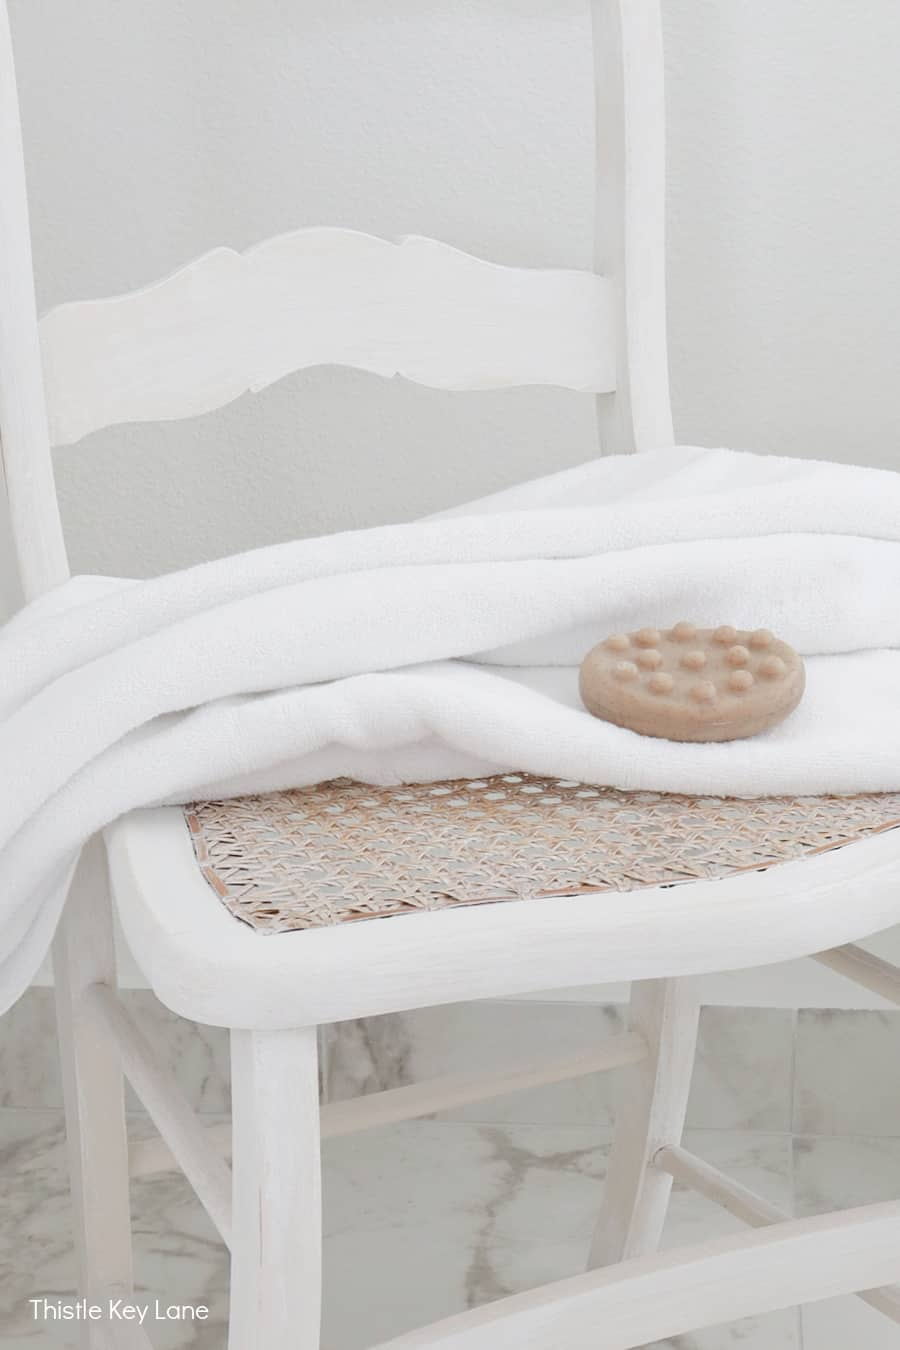 Cane chair with white towel and soap.